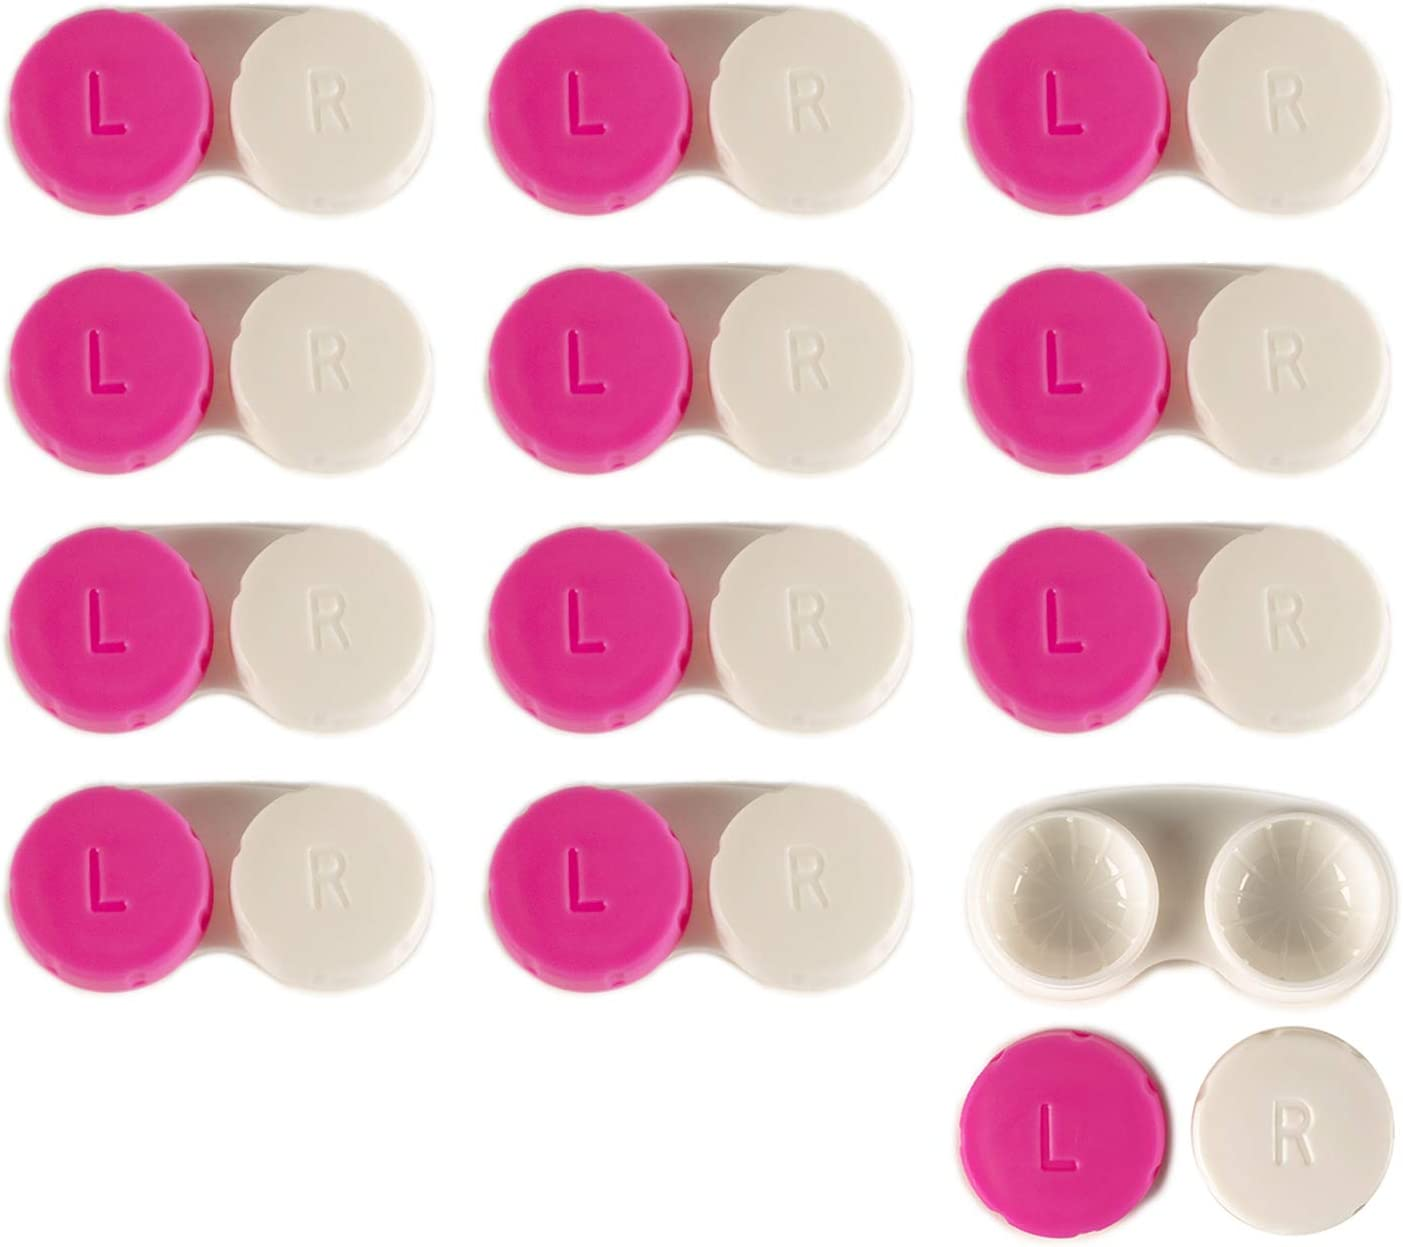 Contact Lens Case 12 Pack Pink Travel Safe Holder Amazon Co Uk Health Personal Care